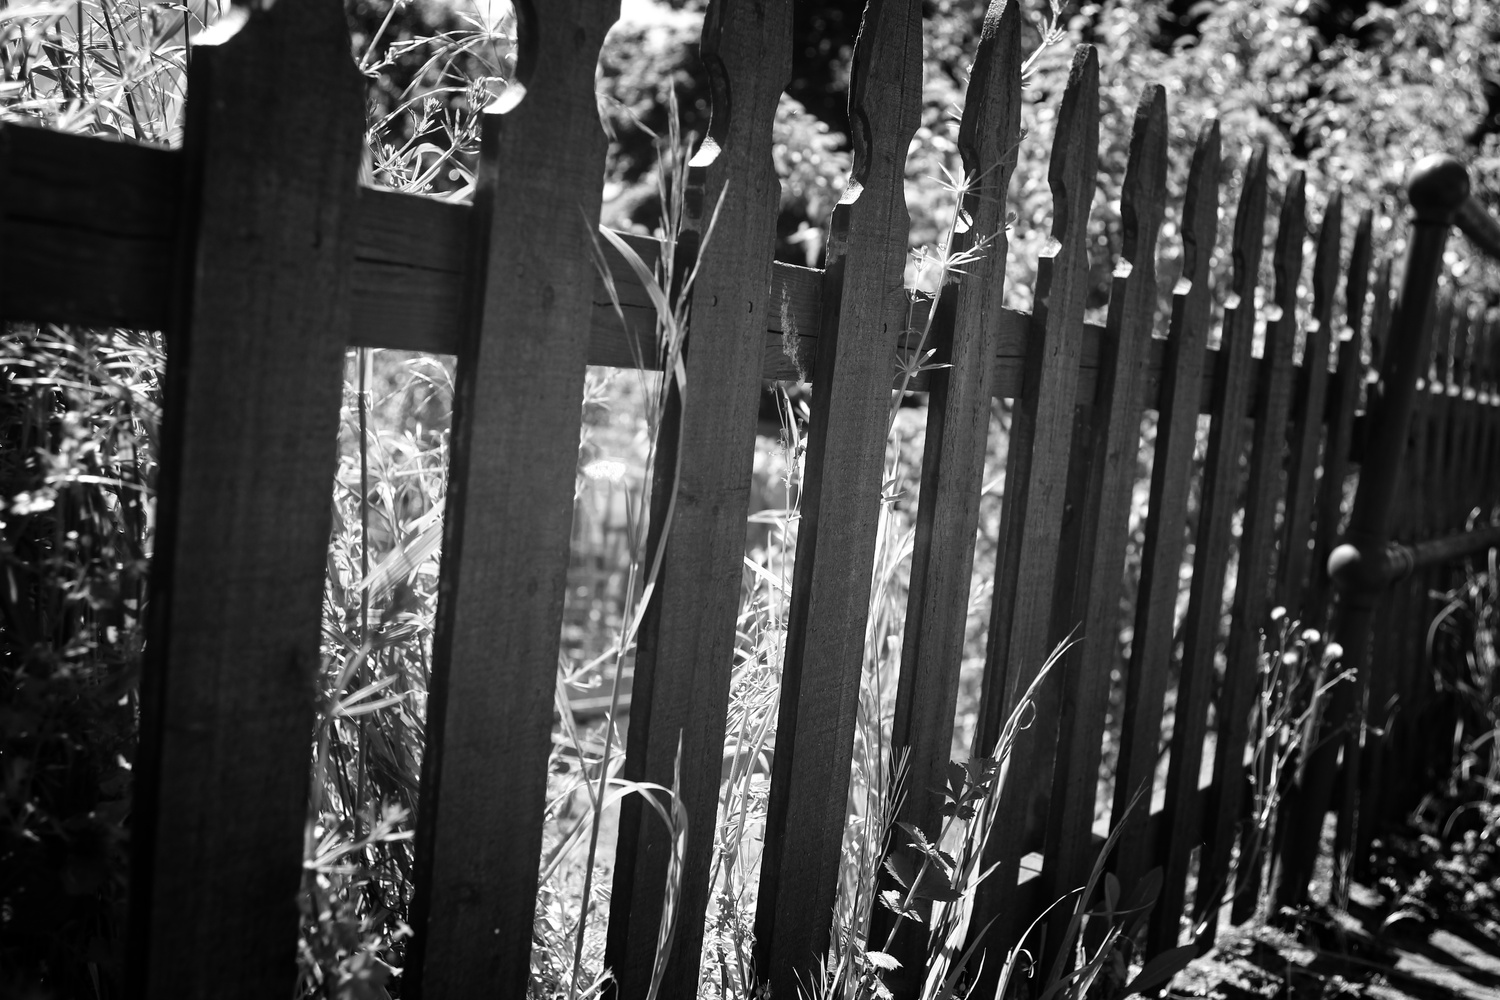 Fenced by J Michael Morelli